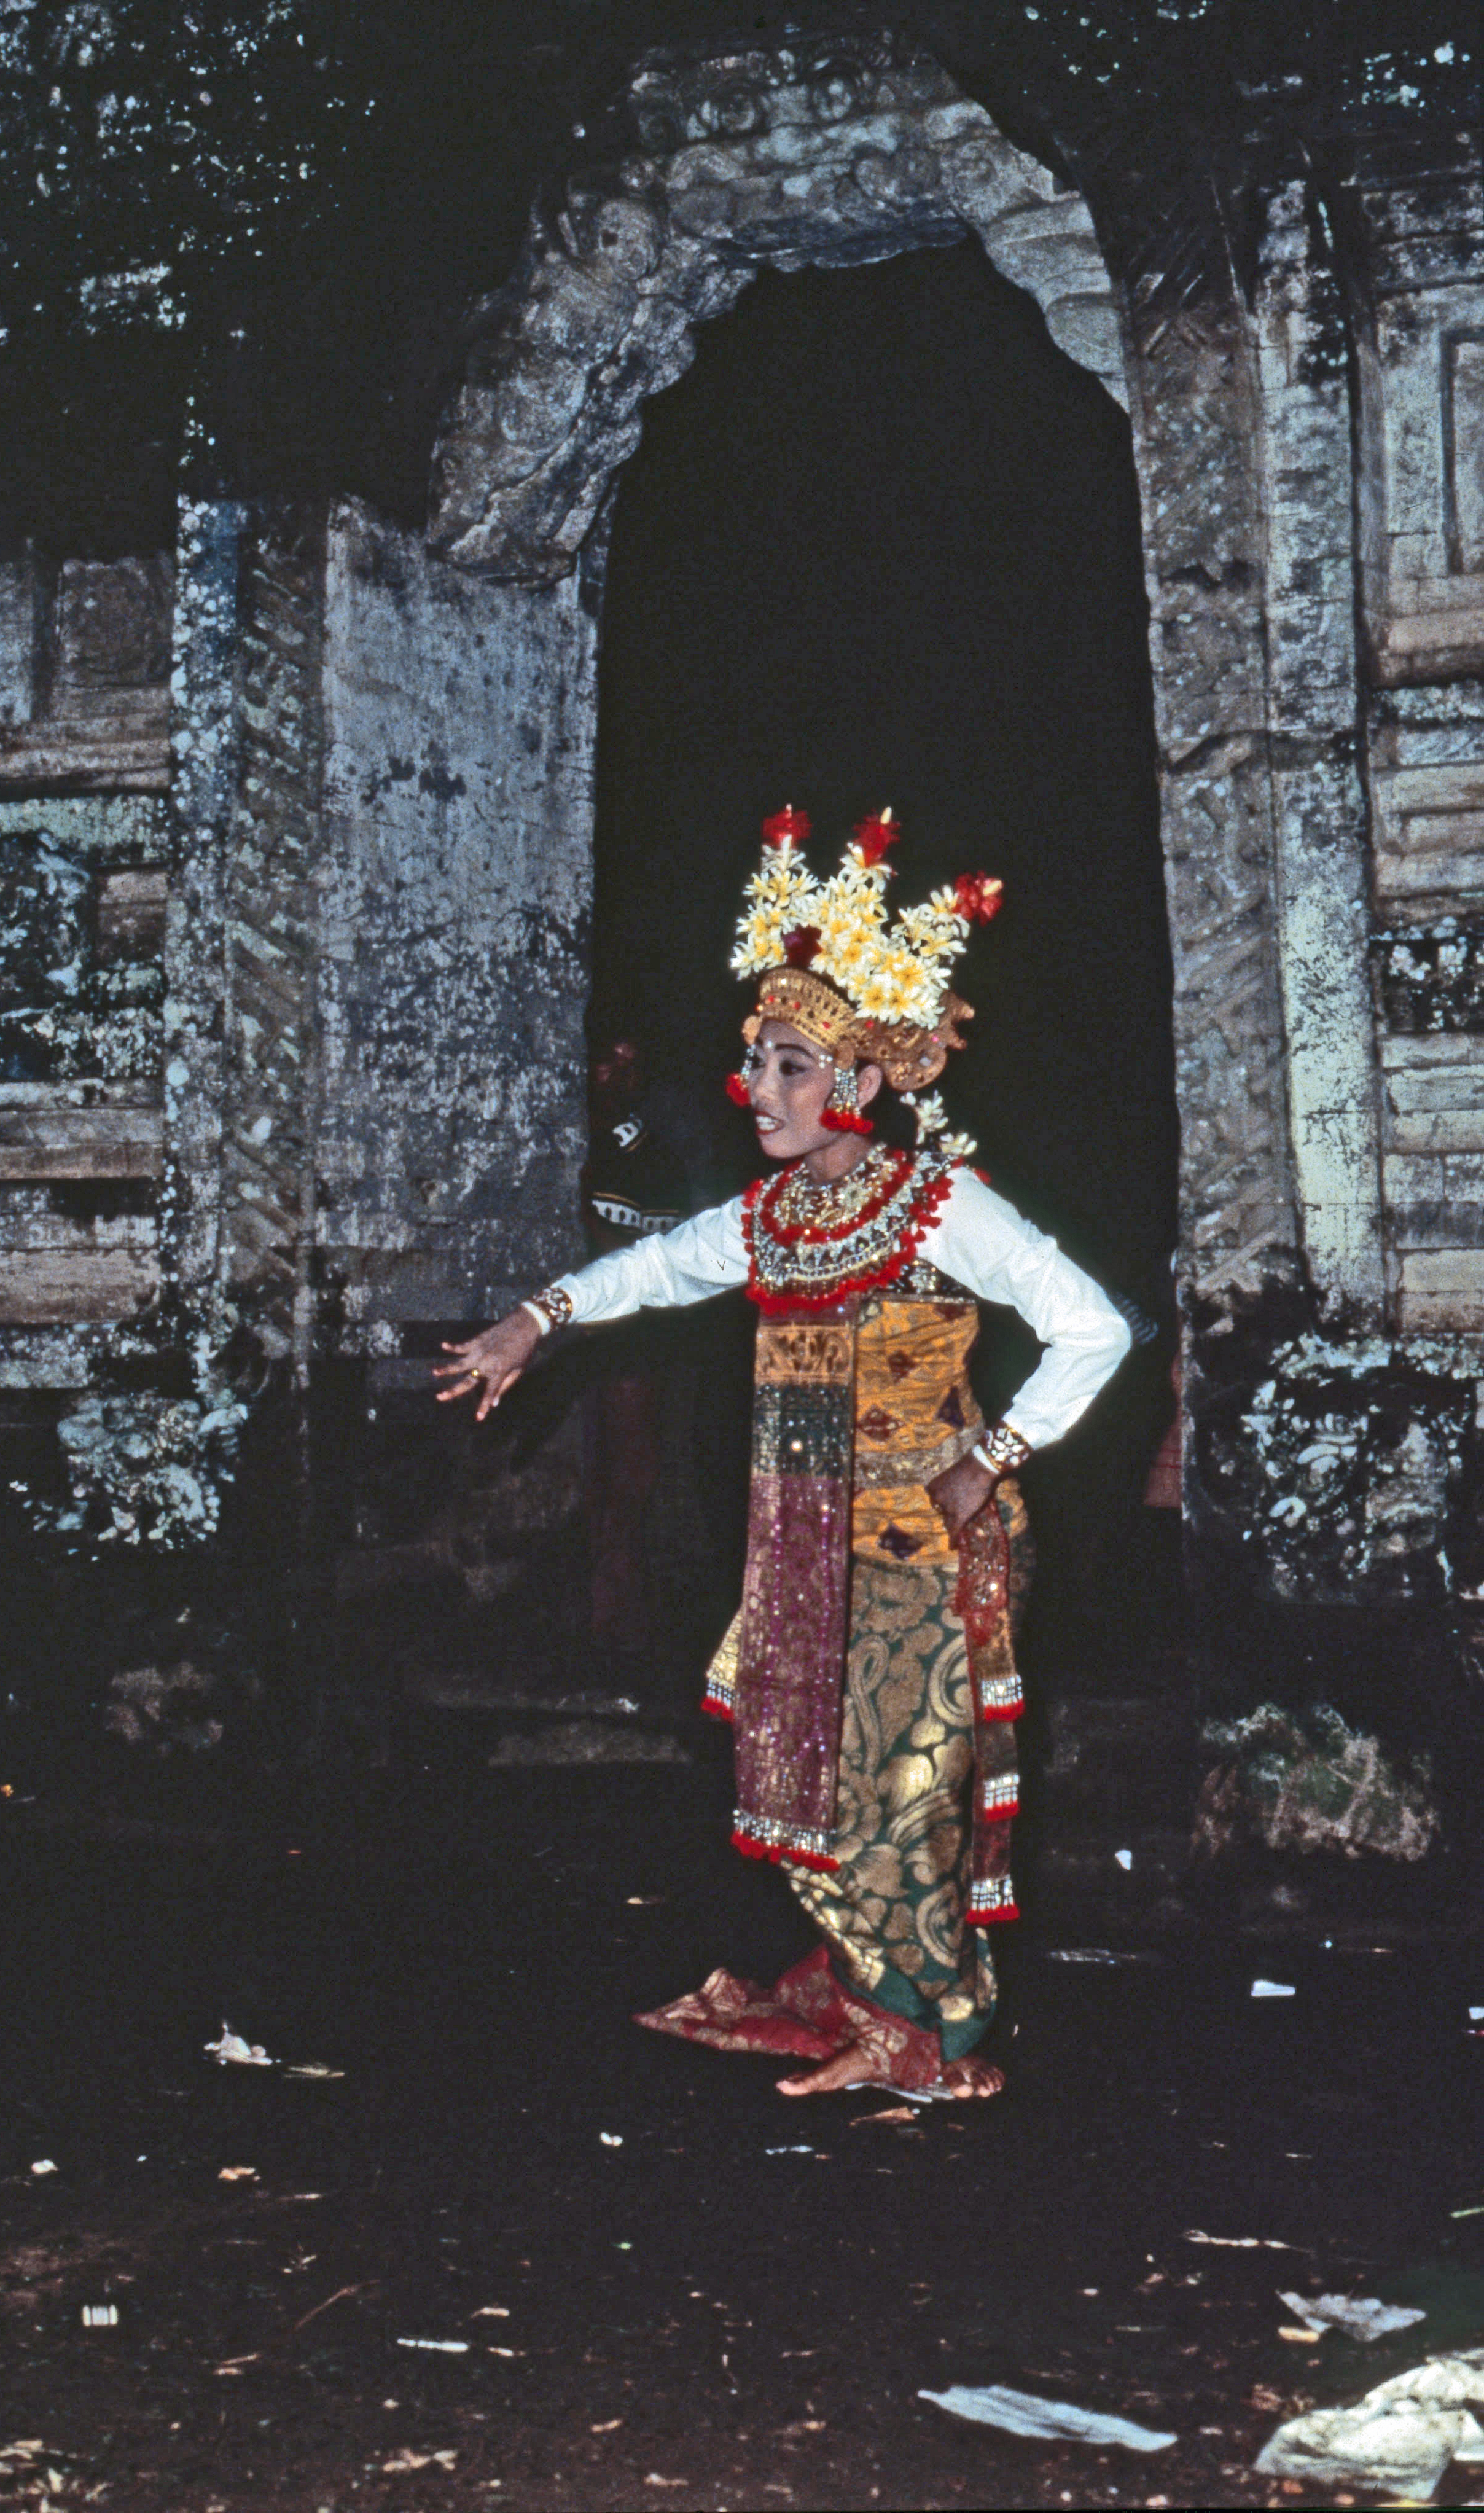 A dance of heavenly nymphs preceding the appearance of Rangda and Barong. Dance, theatre and ritual are fused in the Balinese adaptation of Hindu culture. Country of Origin: Indonesia. Culture: Balinese. Date/Period: 1980s. Place of Origin: Bali. Credit Line: Werner Forman Archive.